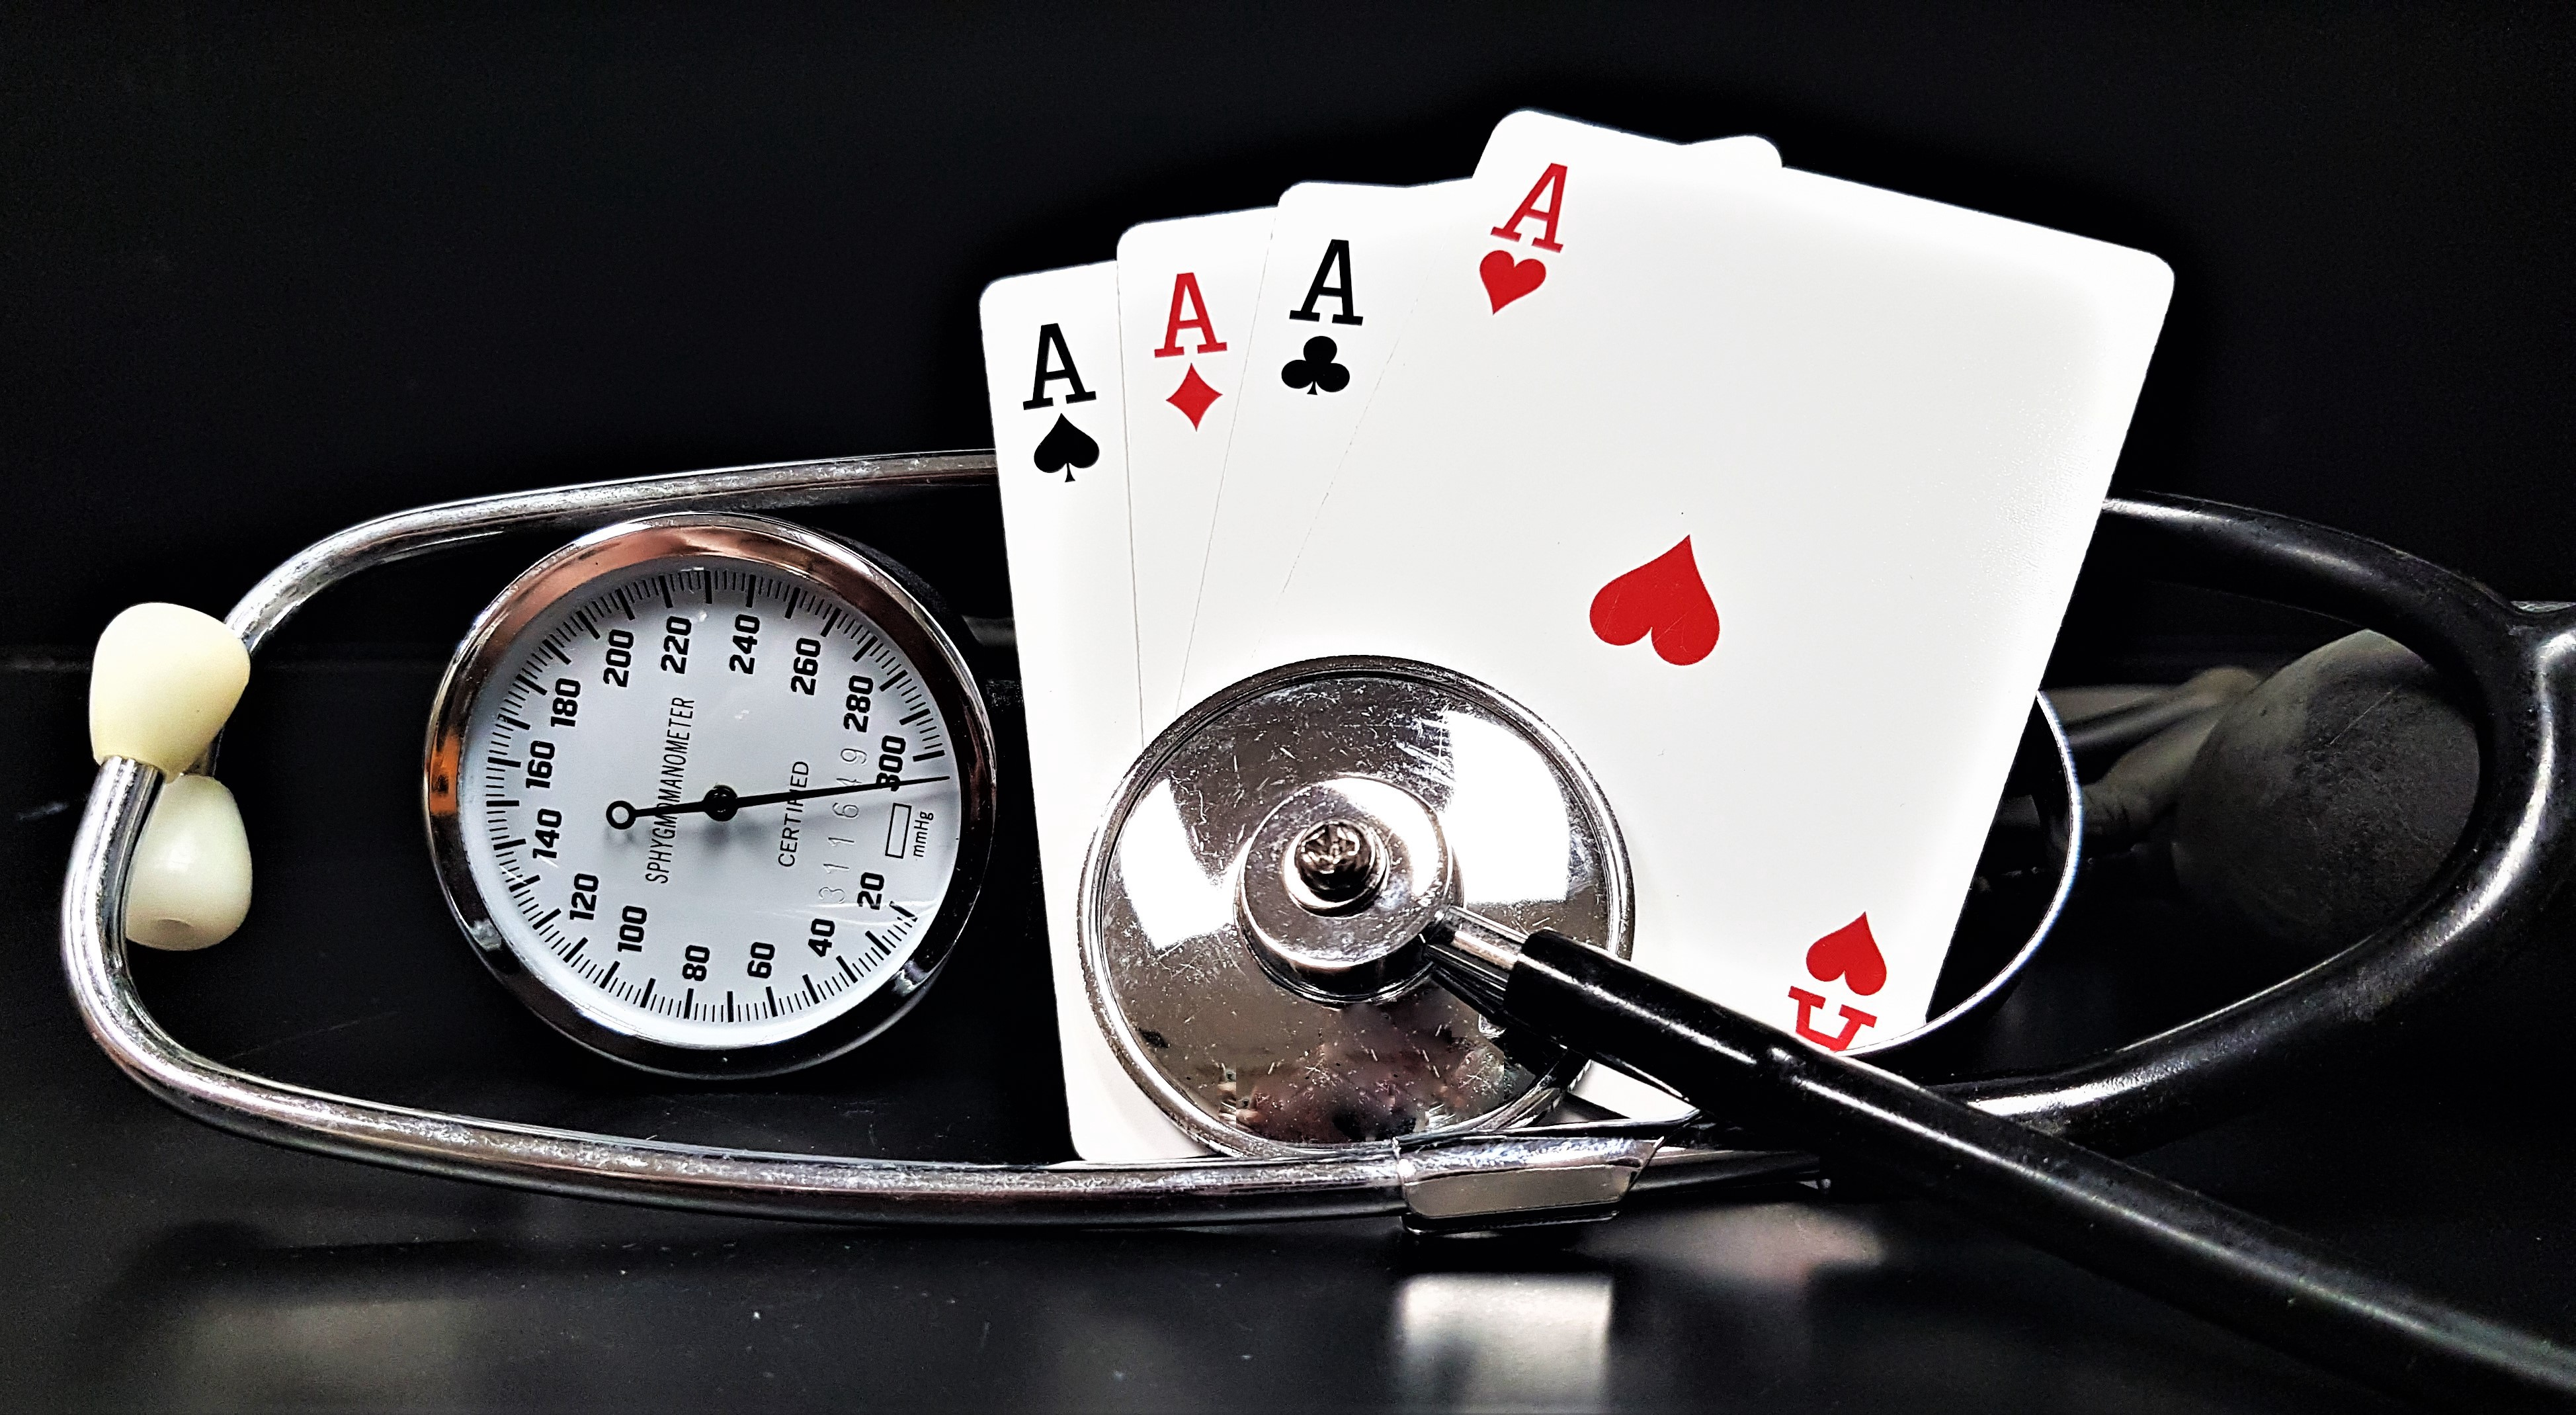 Does COVID-19 Hold an ACE in the Gamble with Blood Pressure Medications or  is it a Bluff?   by Glen Pyle   Medium